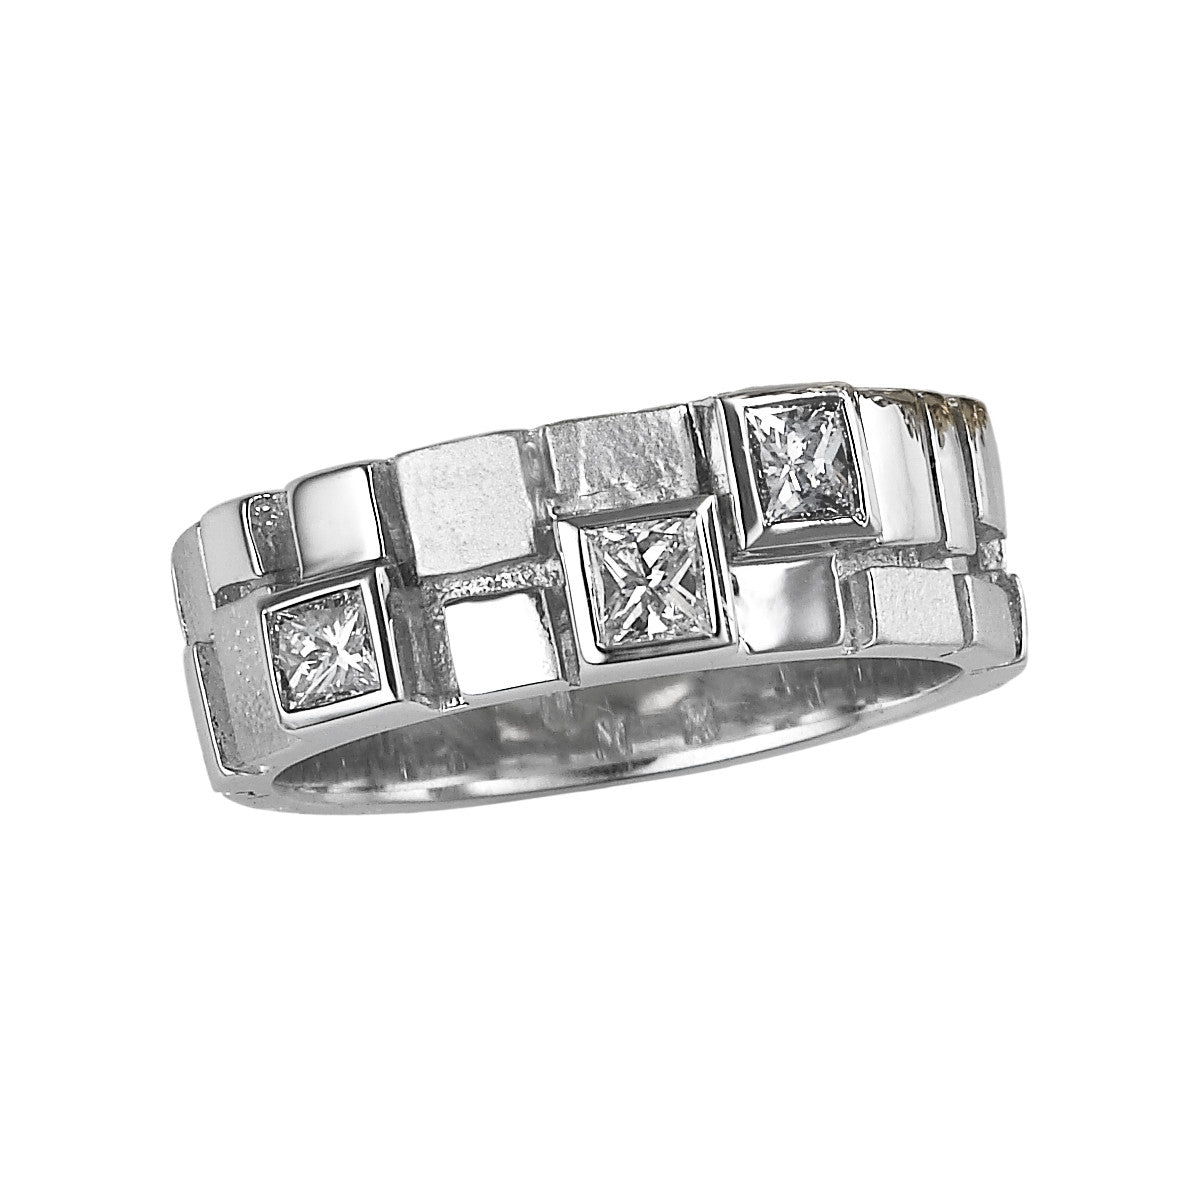 Archive Collection princess cut diamond ring